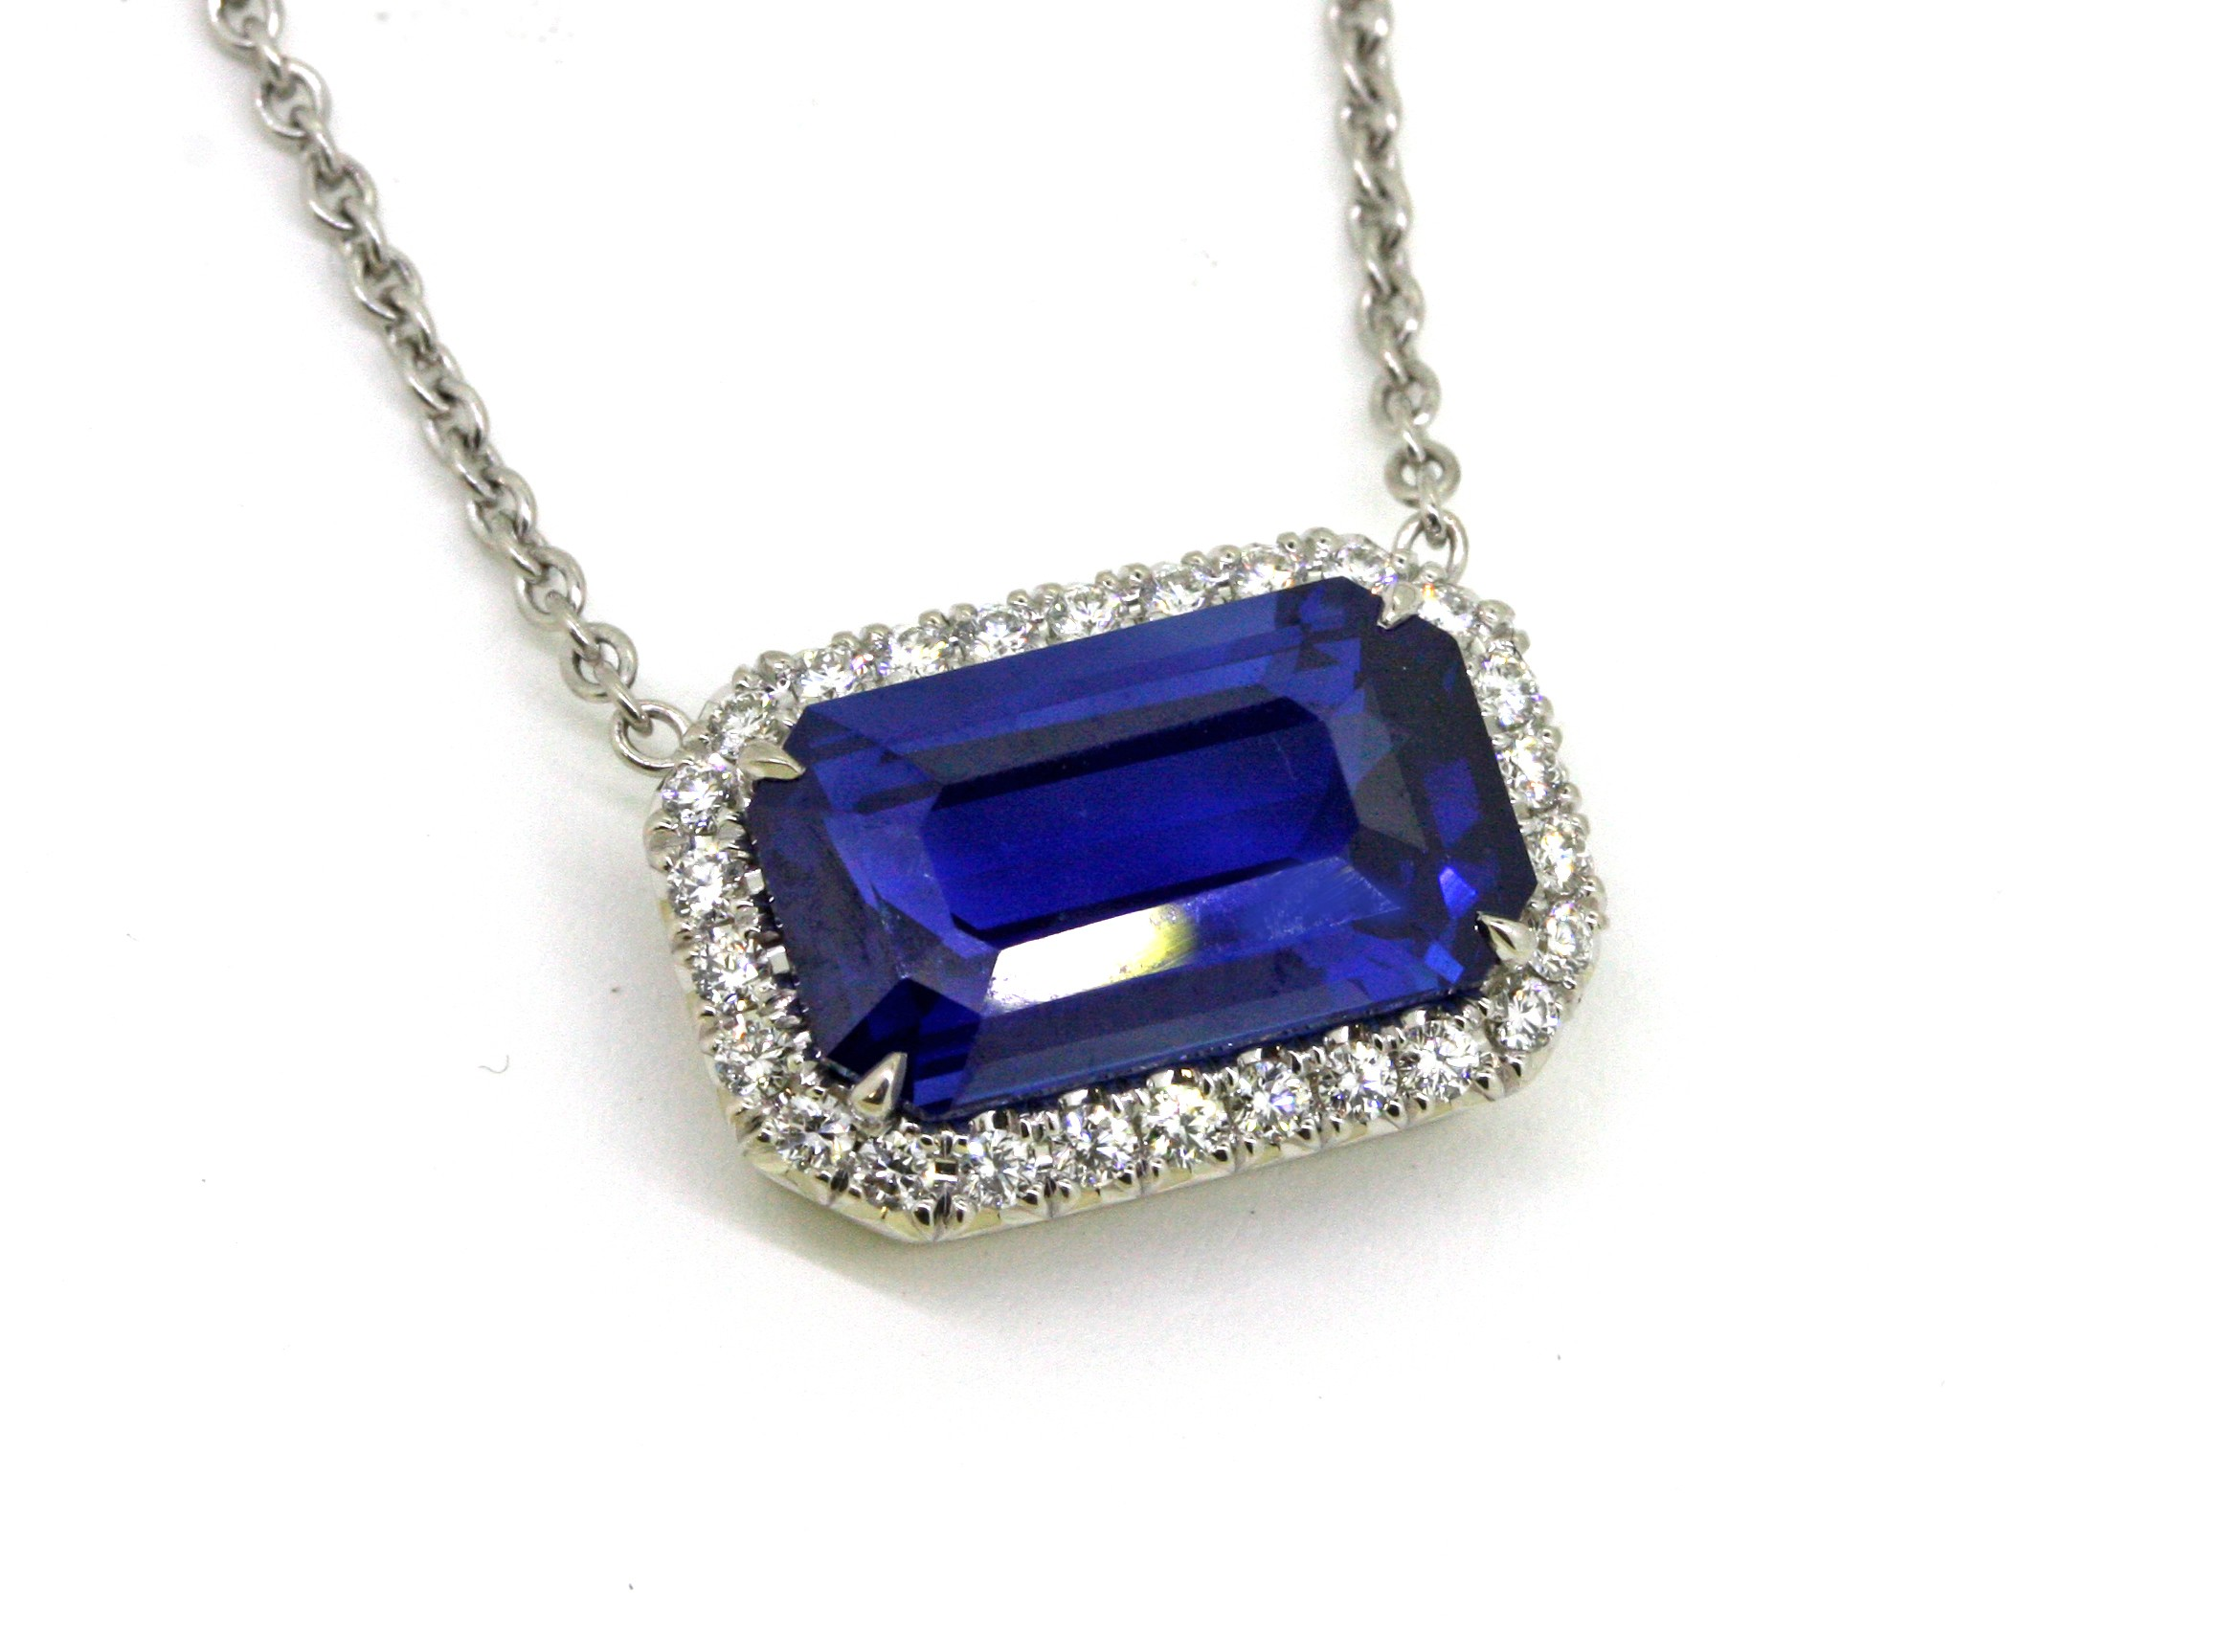 pendant necklaces htm pendants jewellery gems holts i emerald type stone fit